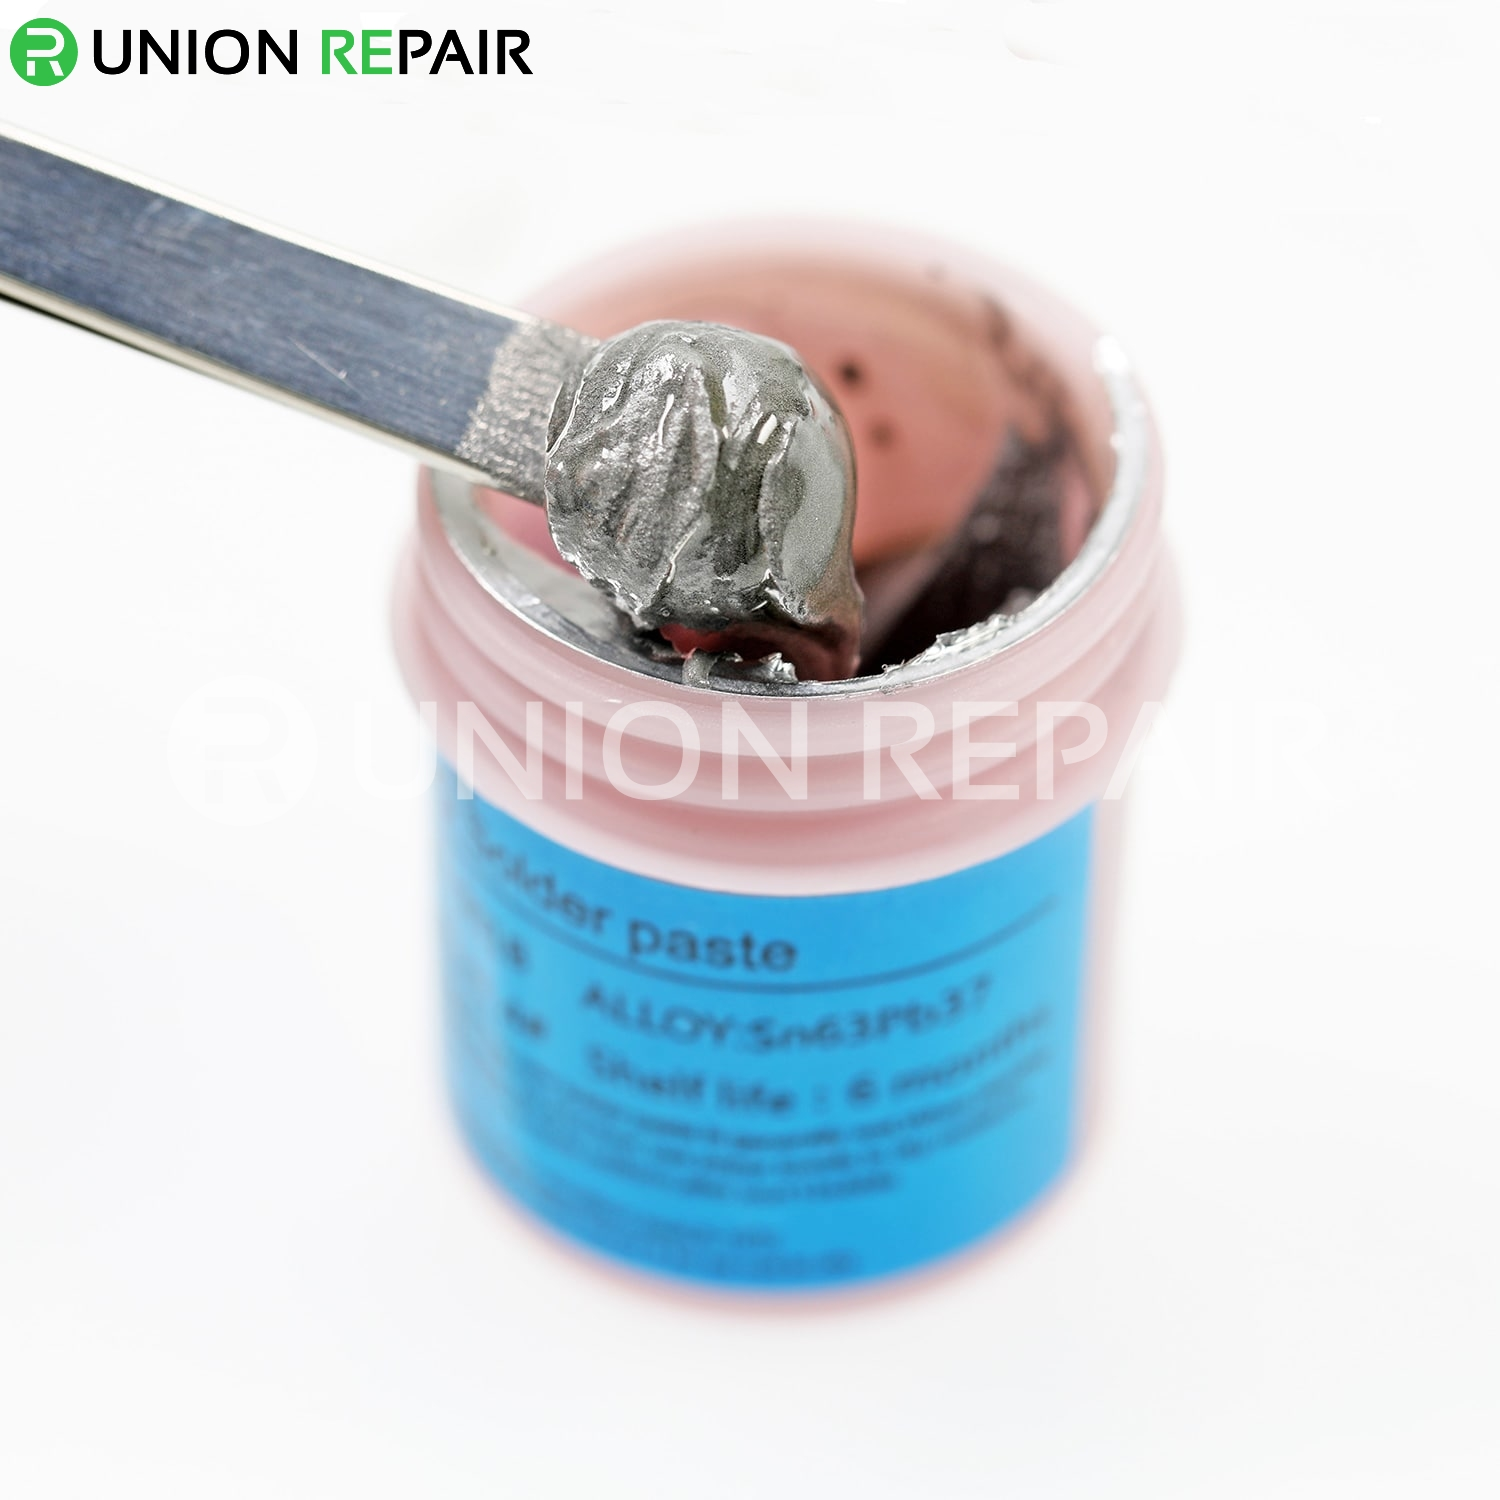 MiJing Solder Paste Tool for PCB SMD BGA, Condition: MJ-503B 30g 138°C Low Temperature